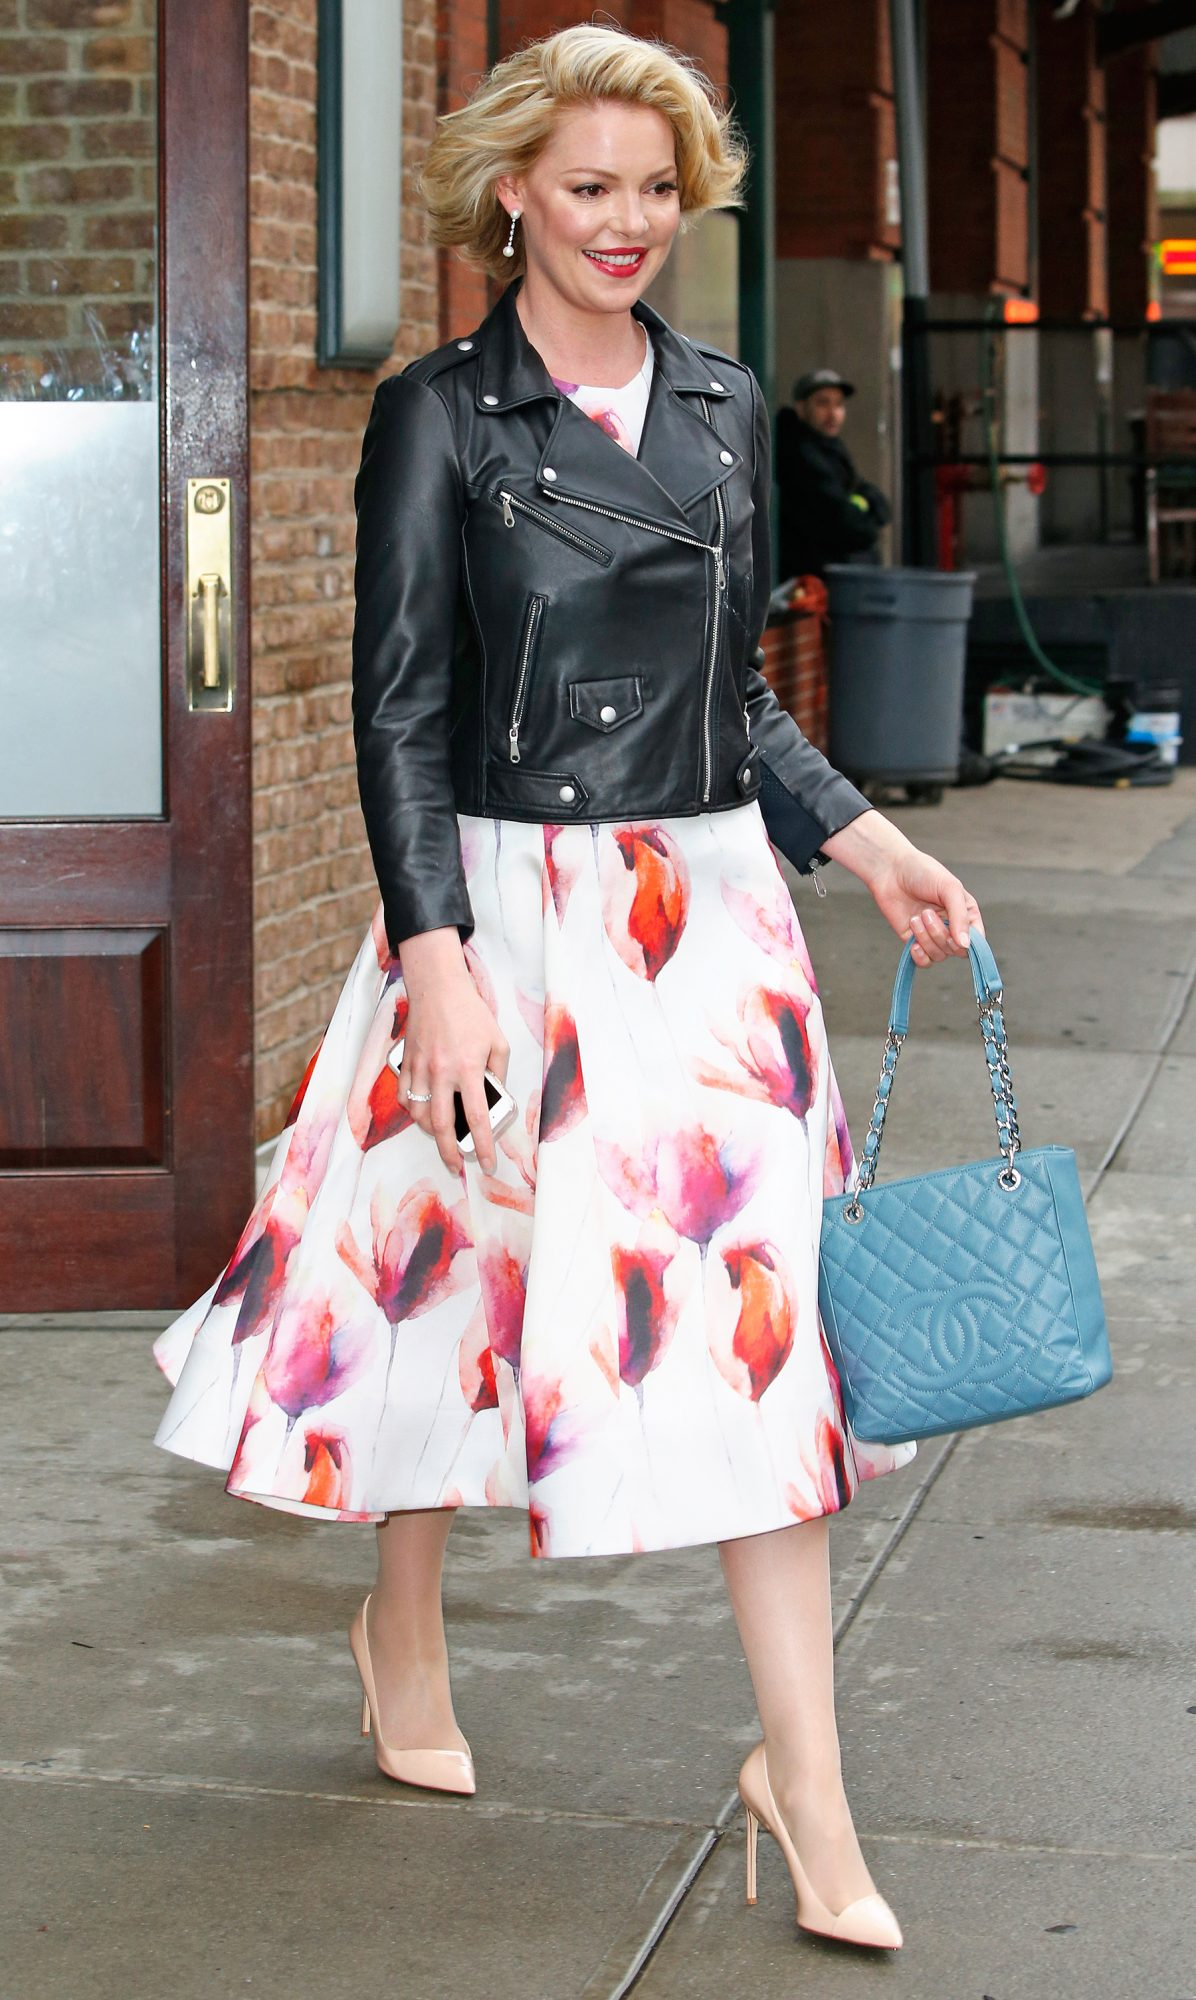 Katherine Heigl wears a leather biker jacket with a floral dress in New York City